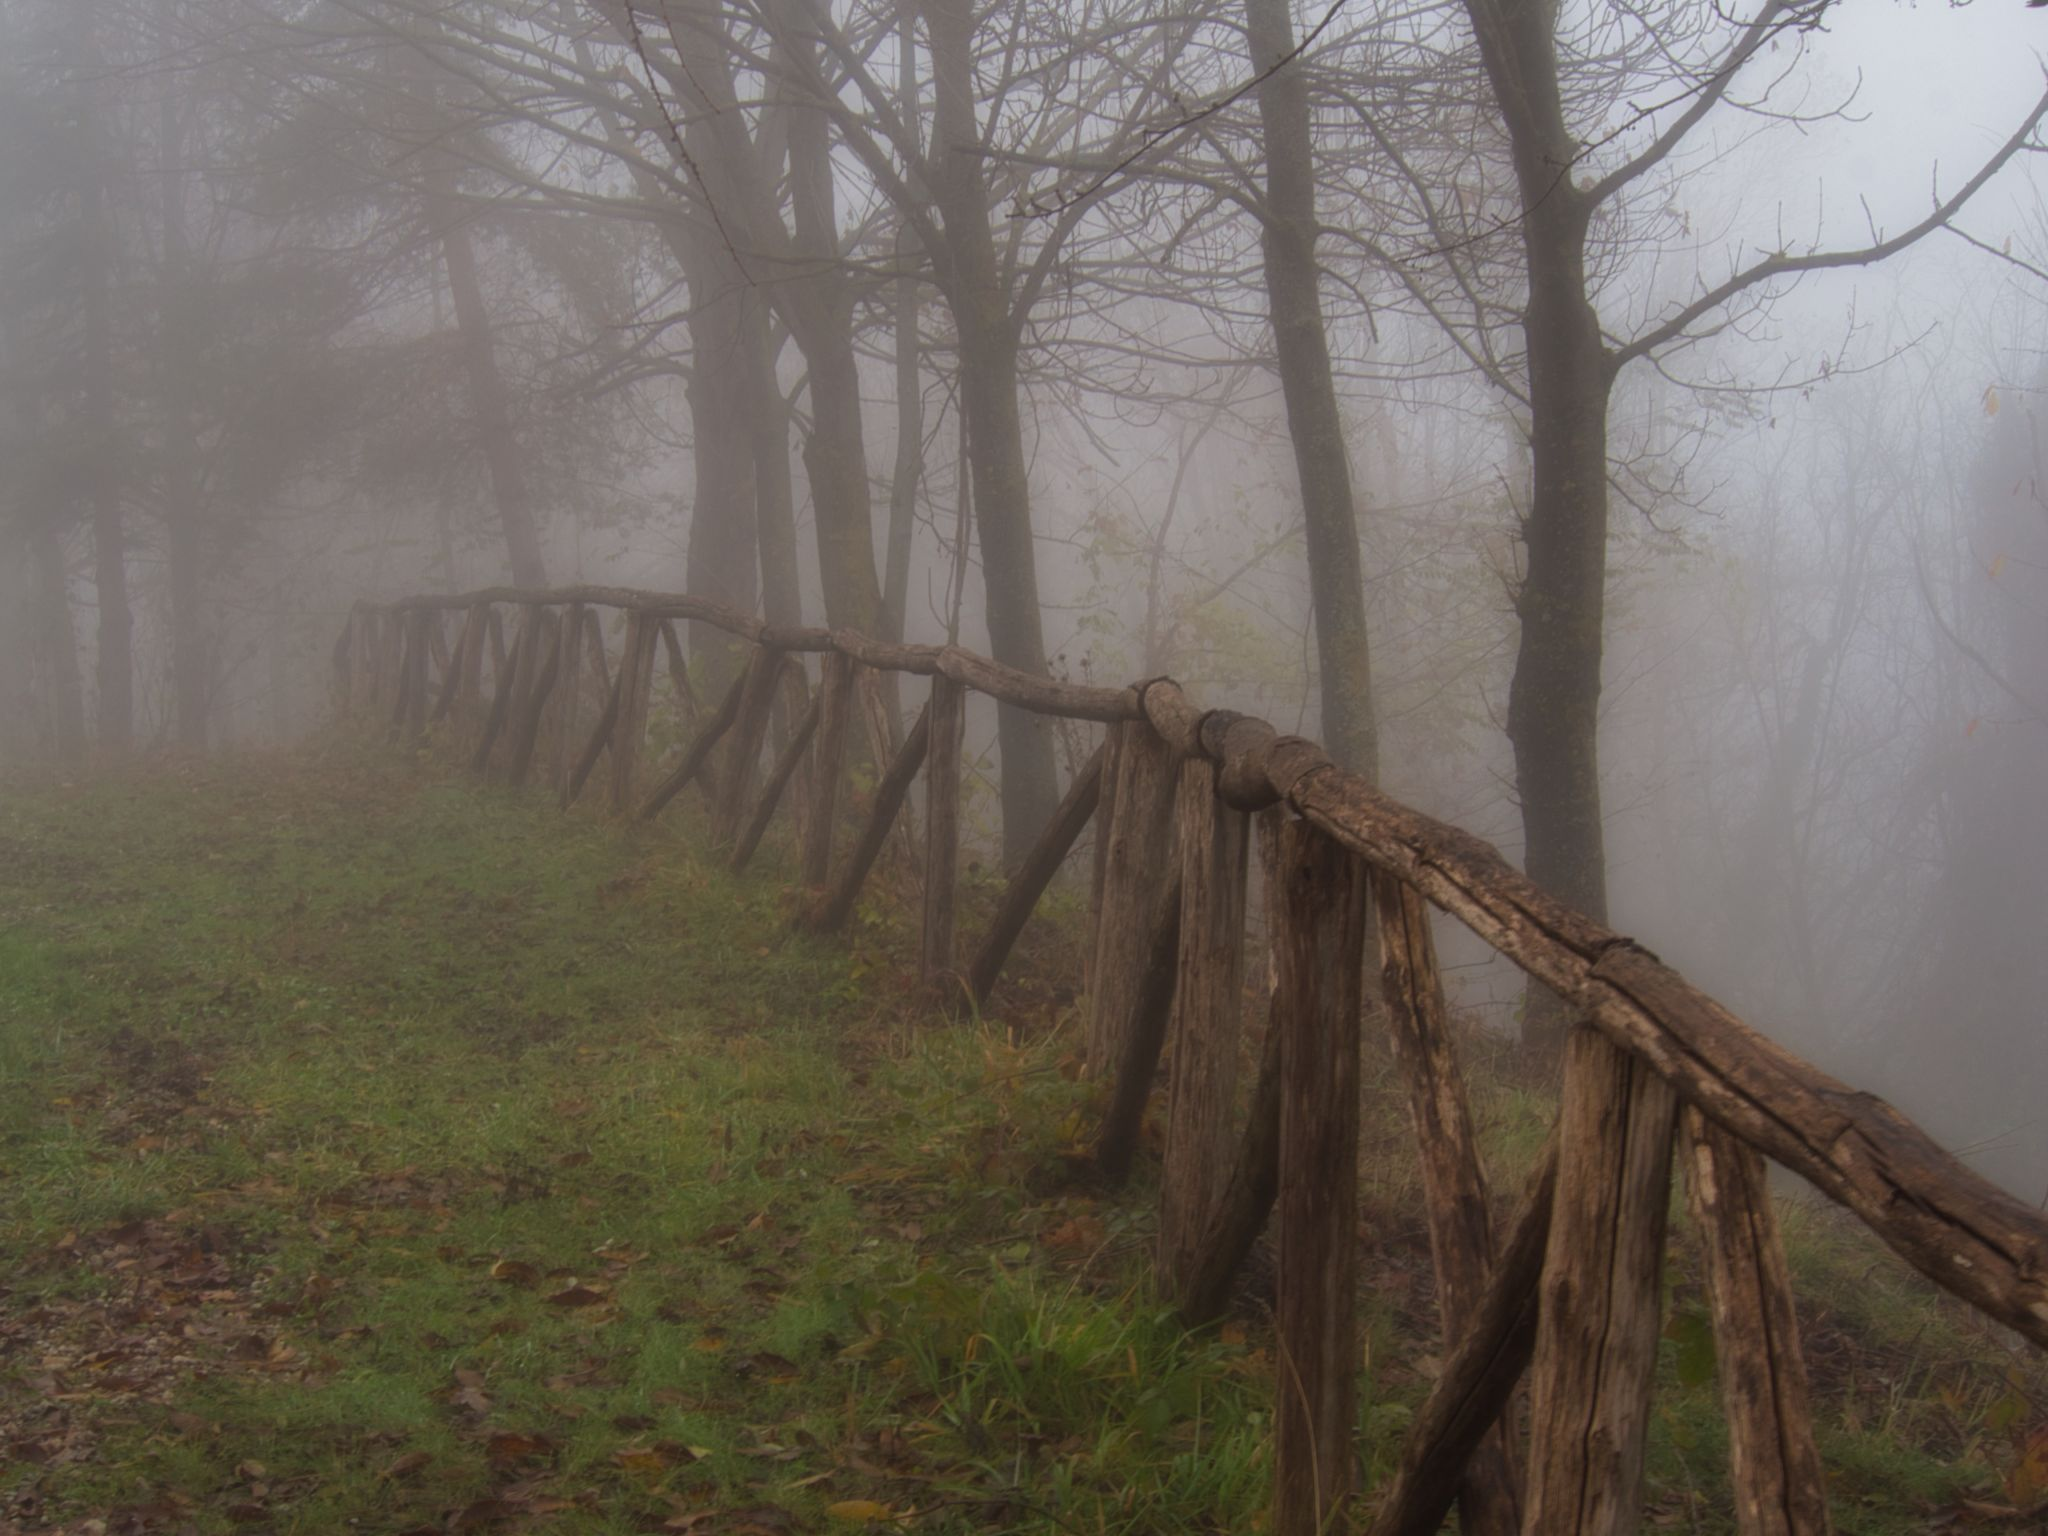 Foggy Morning in Piemonte, Italy